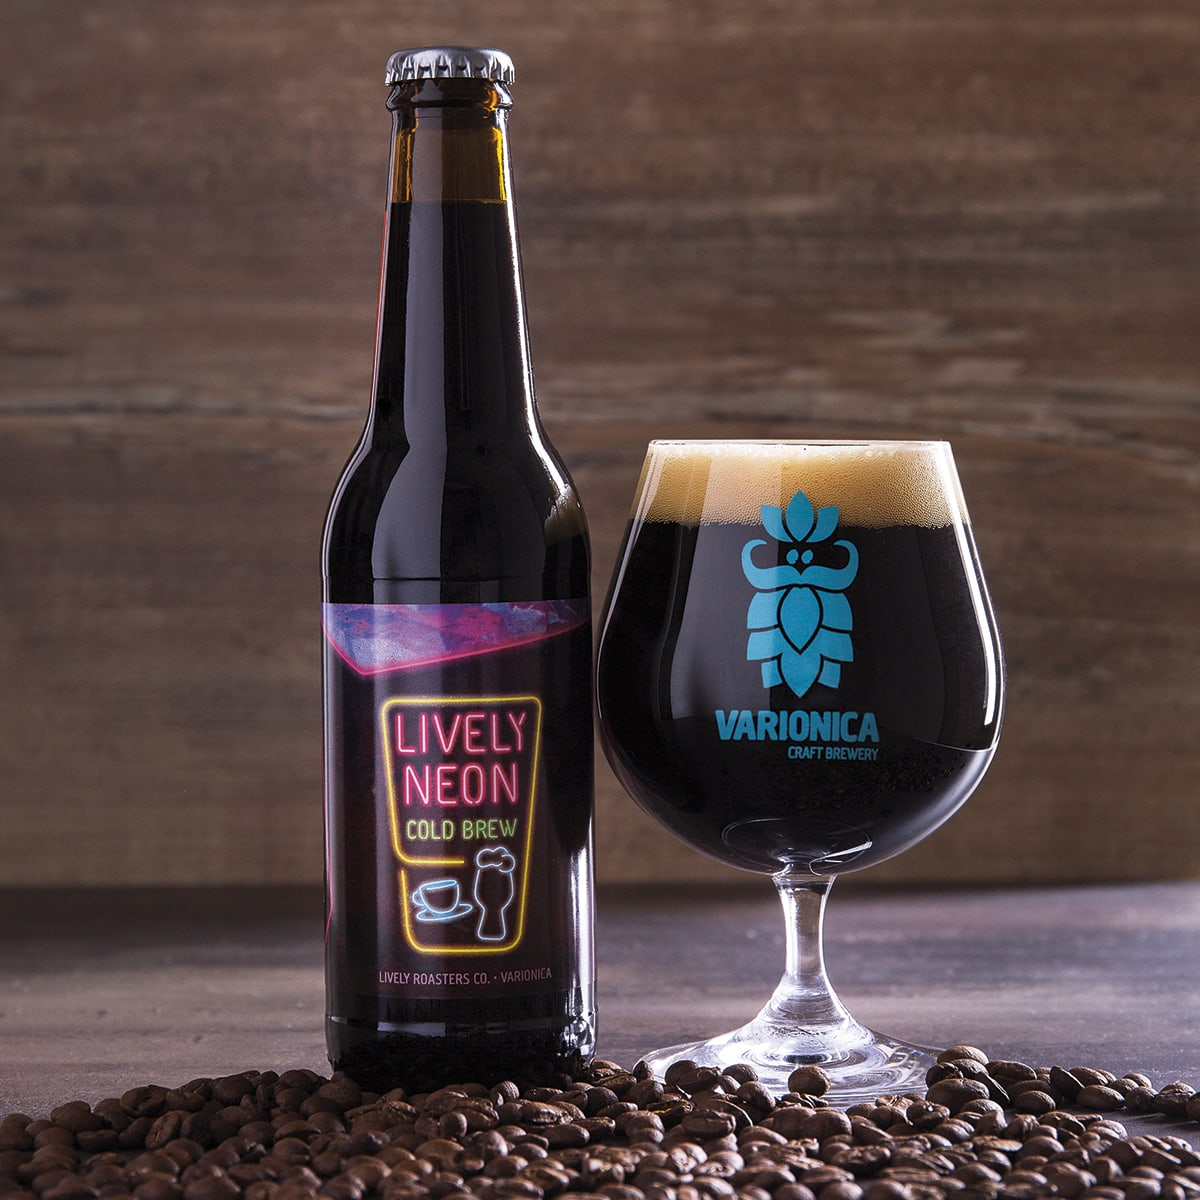 Lively Neon Cold Brew